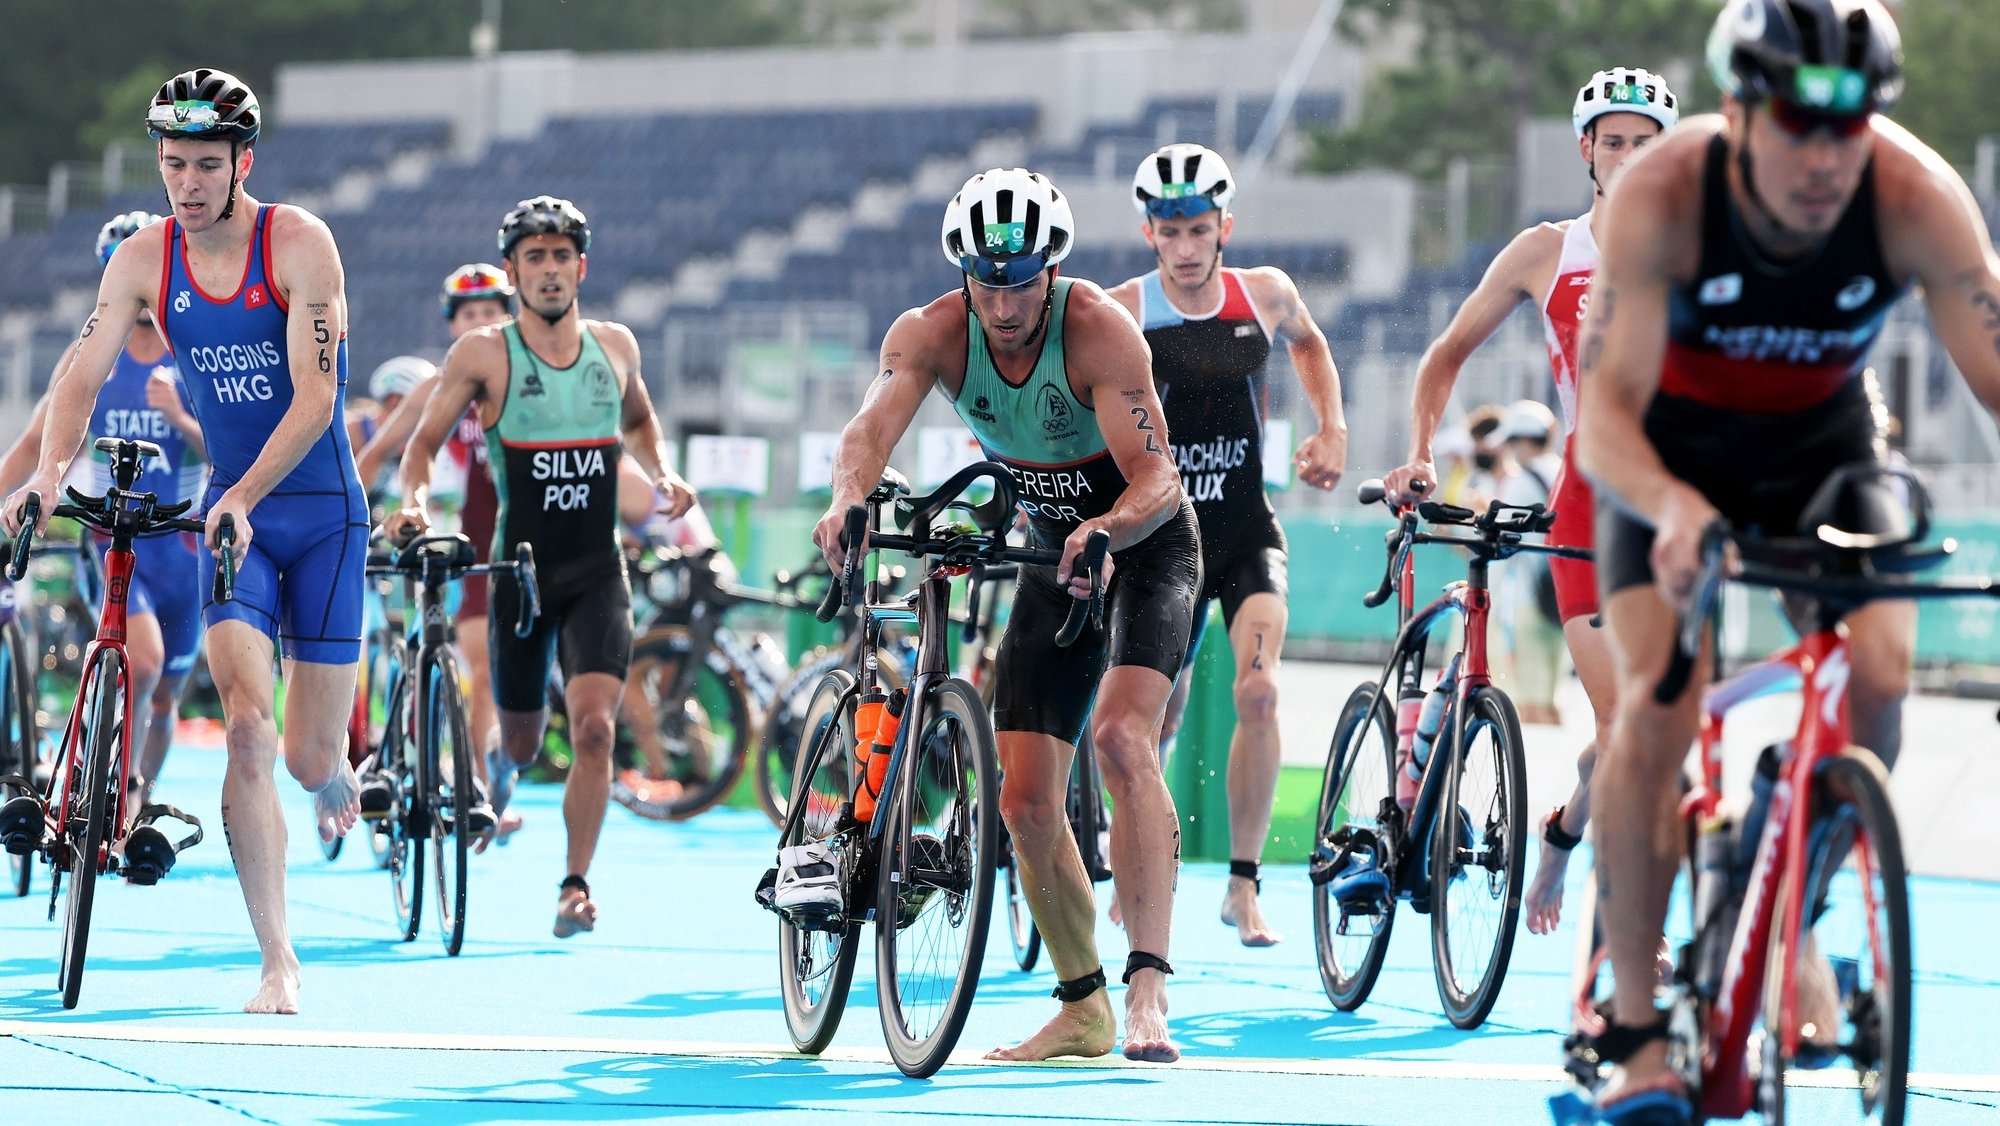 epa09365641 Joao Pereira (C) of Portugal gets on his bike for the cycling section of the Men's Triathlon race of the Tokyo 2020 Olympic Games at the Odaiba Marine Park in Tokyo, Japan, 26 July 2021.  EPA/WU HONG